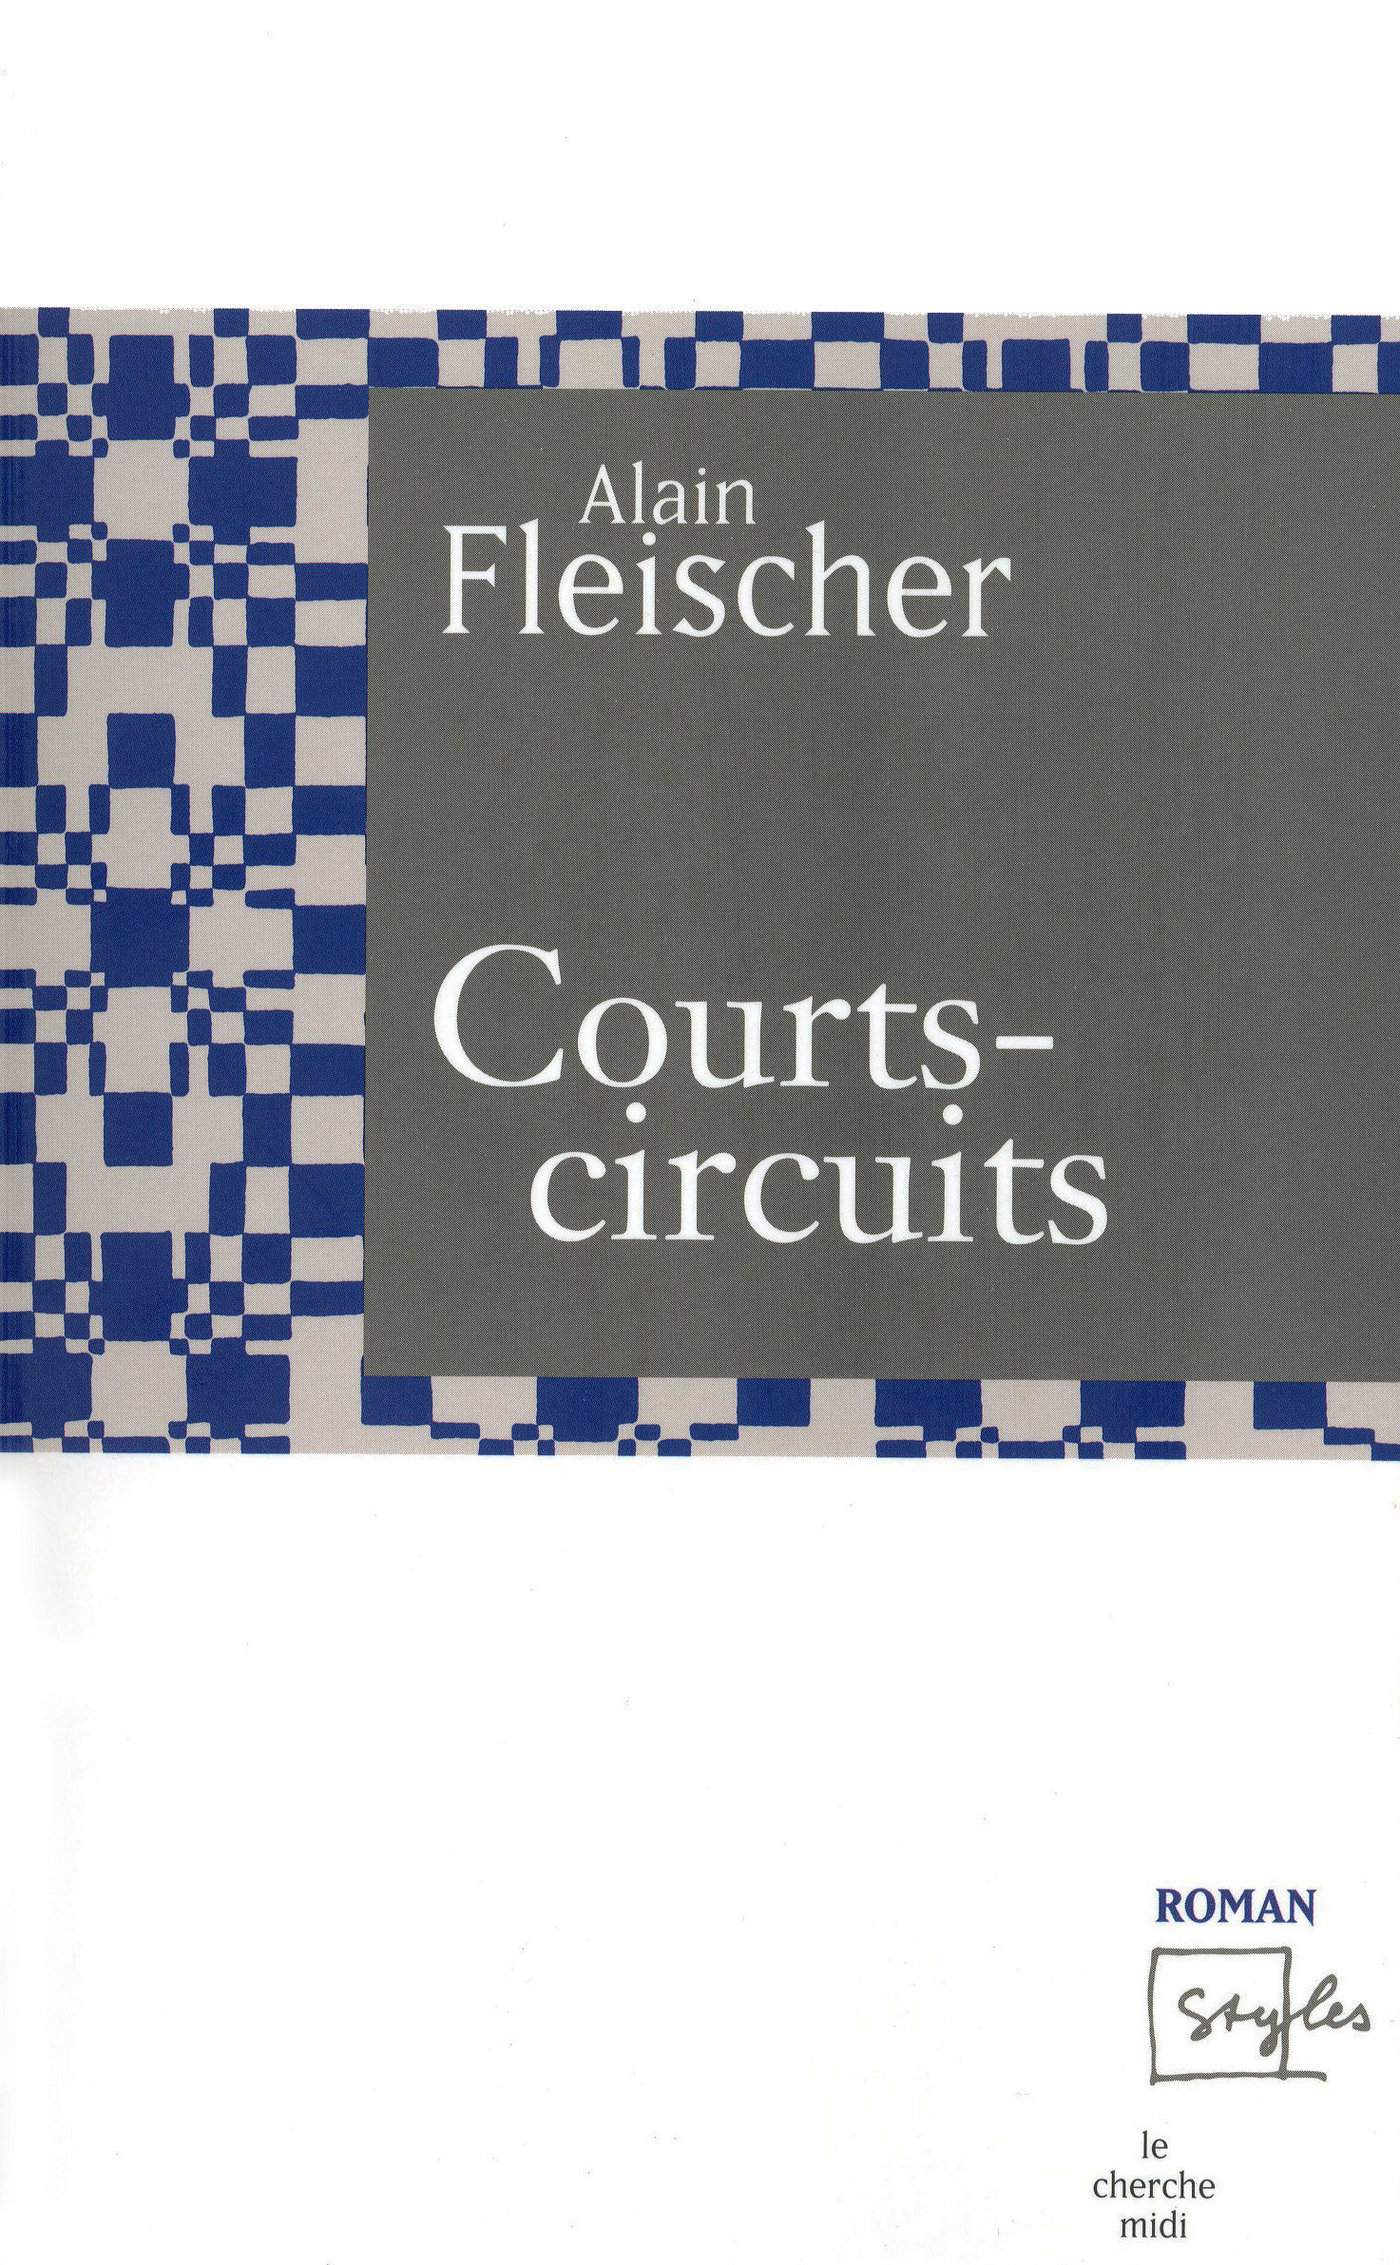 Court-circuits